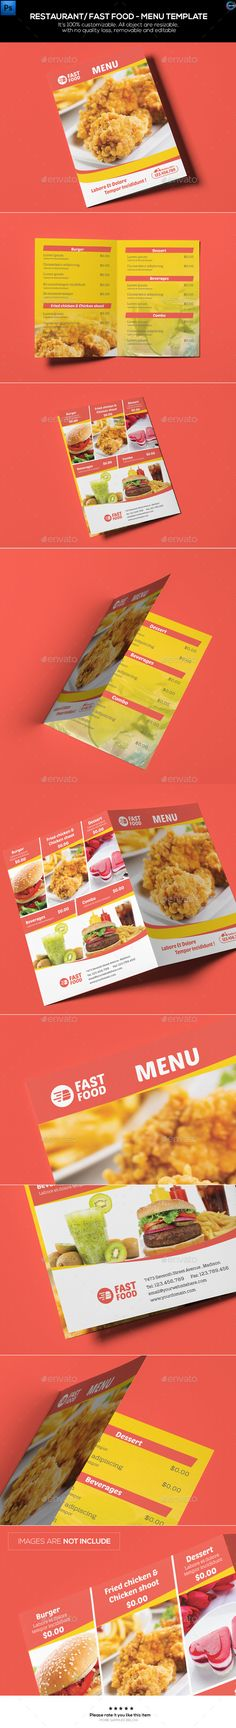 Brochures, Sushi and Restaurant on Pinterest - kids menu templates